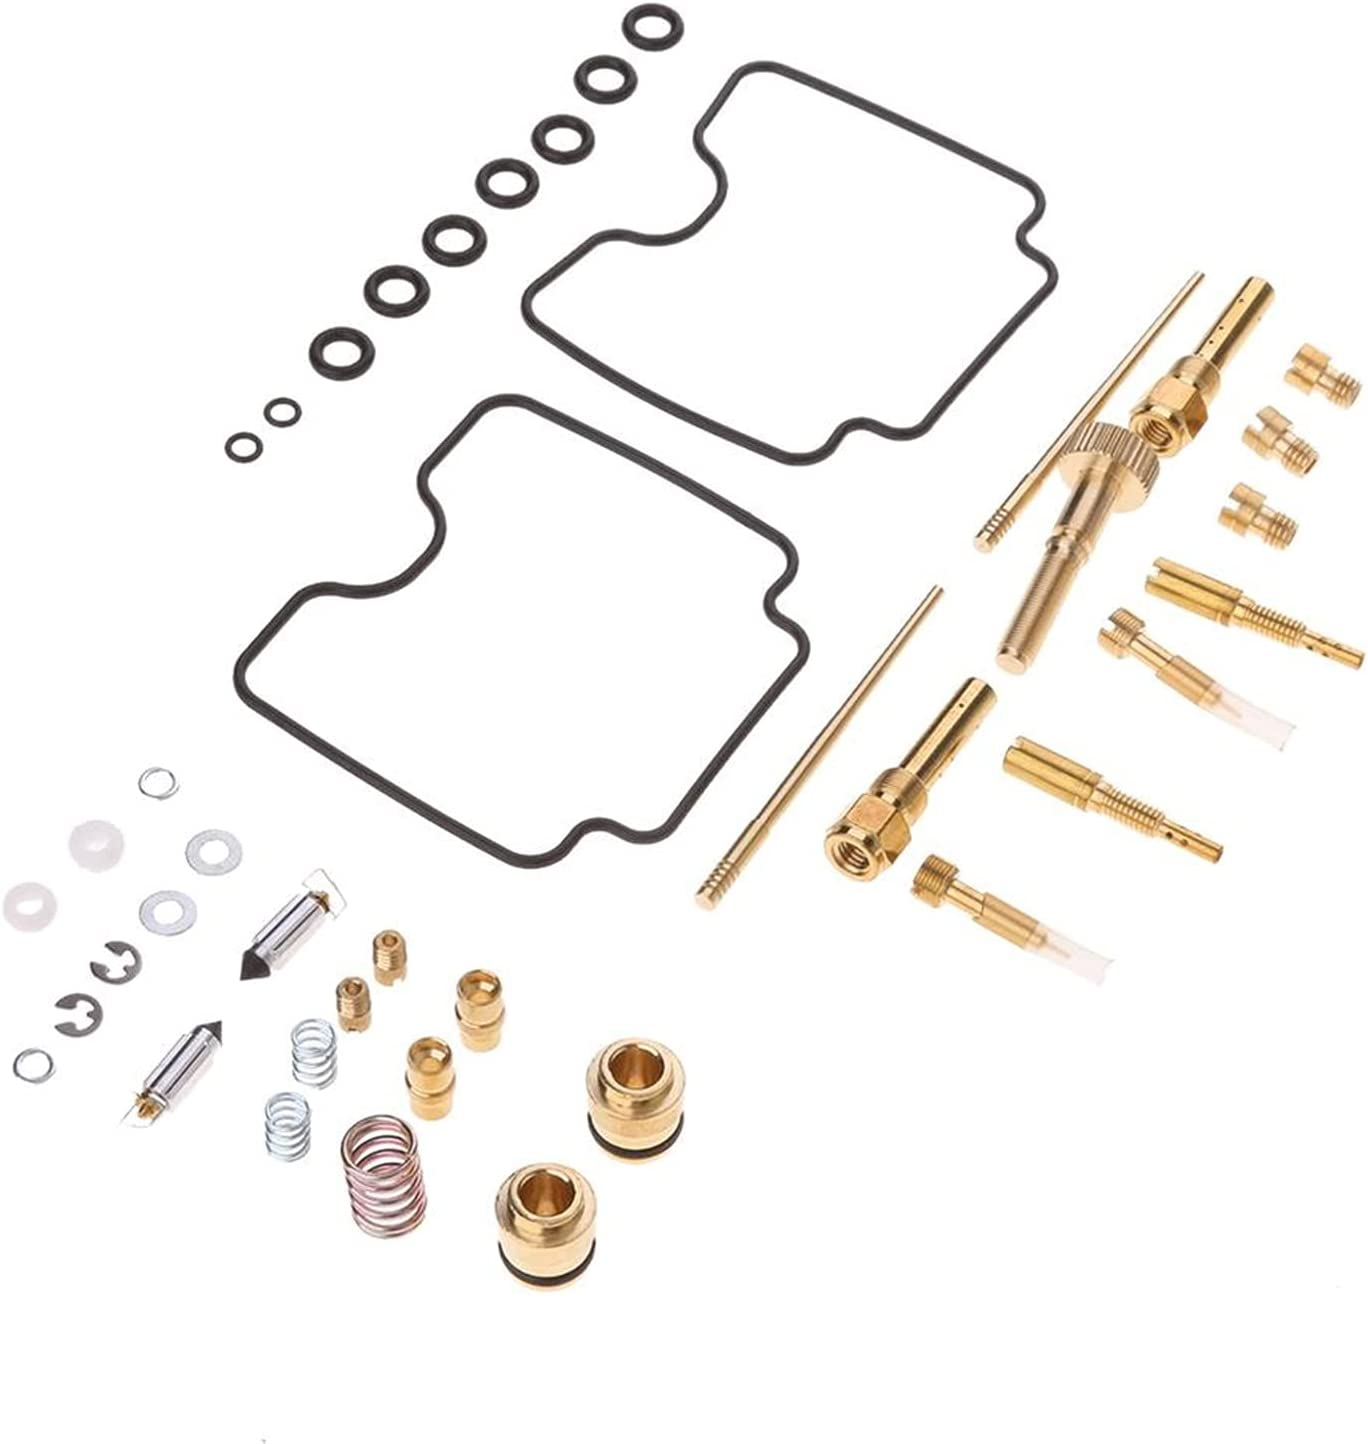 Excellence GYF Motorcycle Carburetor Rebuild Kit for High quality Yamaha Rap Carb Repair